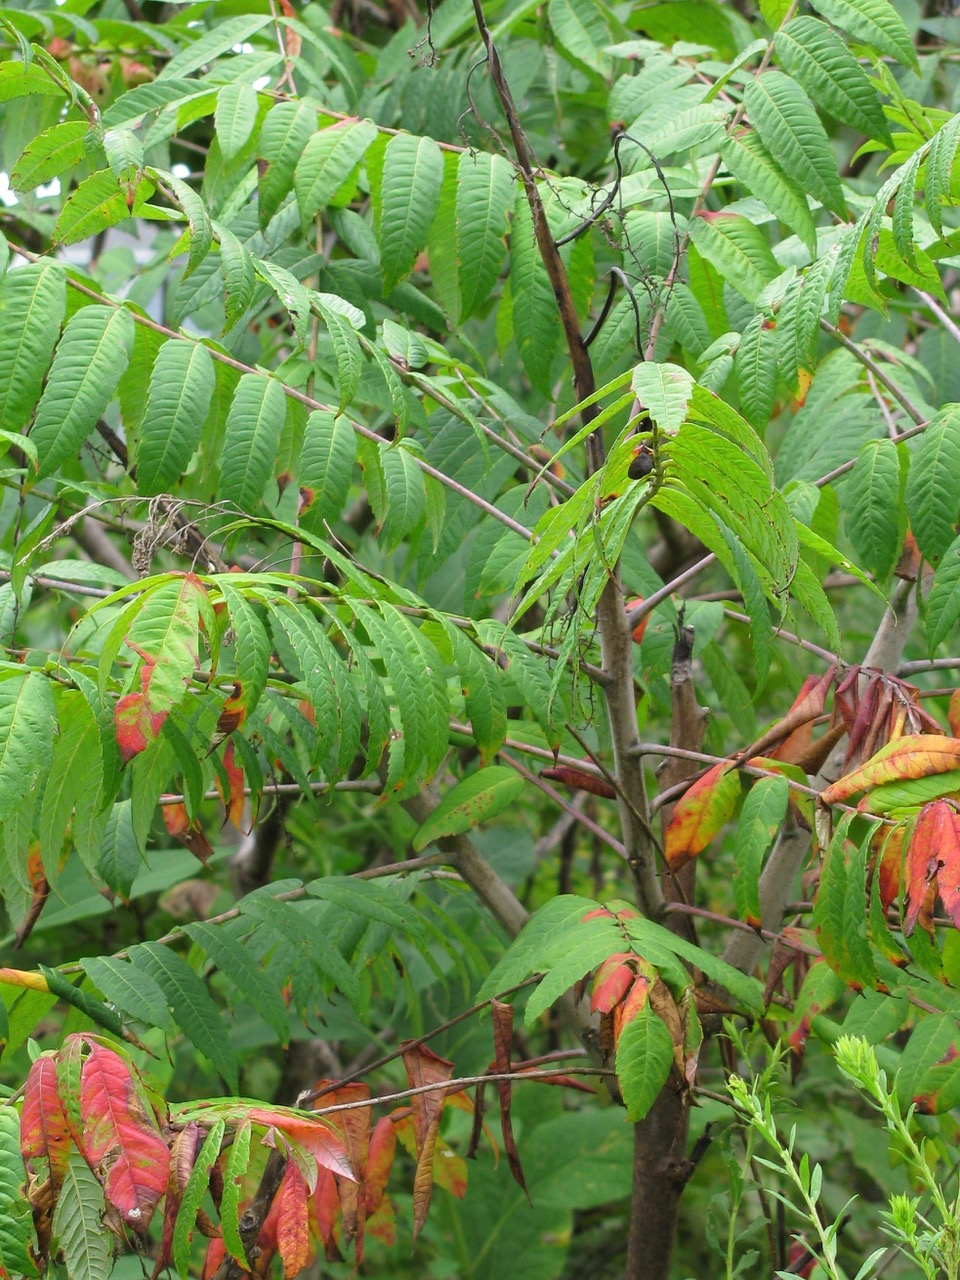 The Scientific Name is Rhus glabra. You will likely hear them called Smooth Sumac. This picture shows the Stems are glabrous and not heavily tomentose (fuzzy) as in R. typhina of Rhus glabra